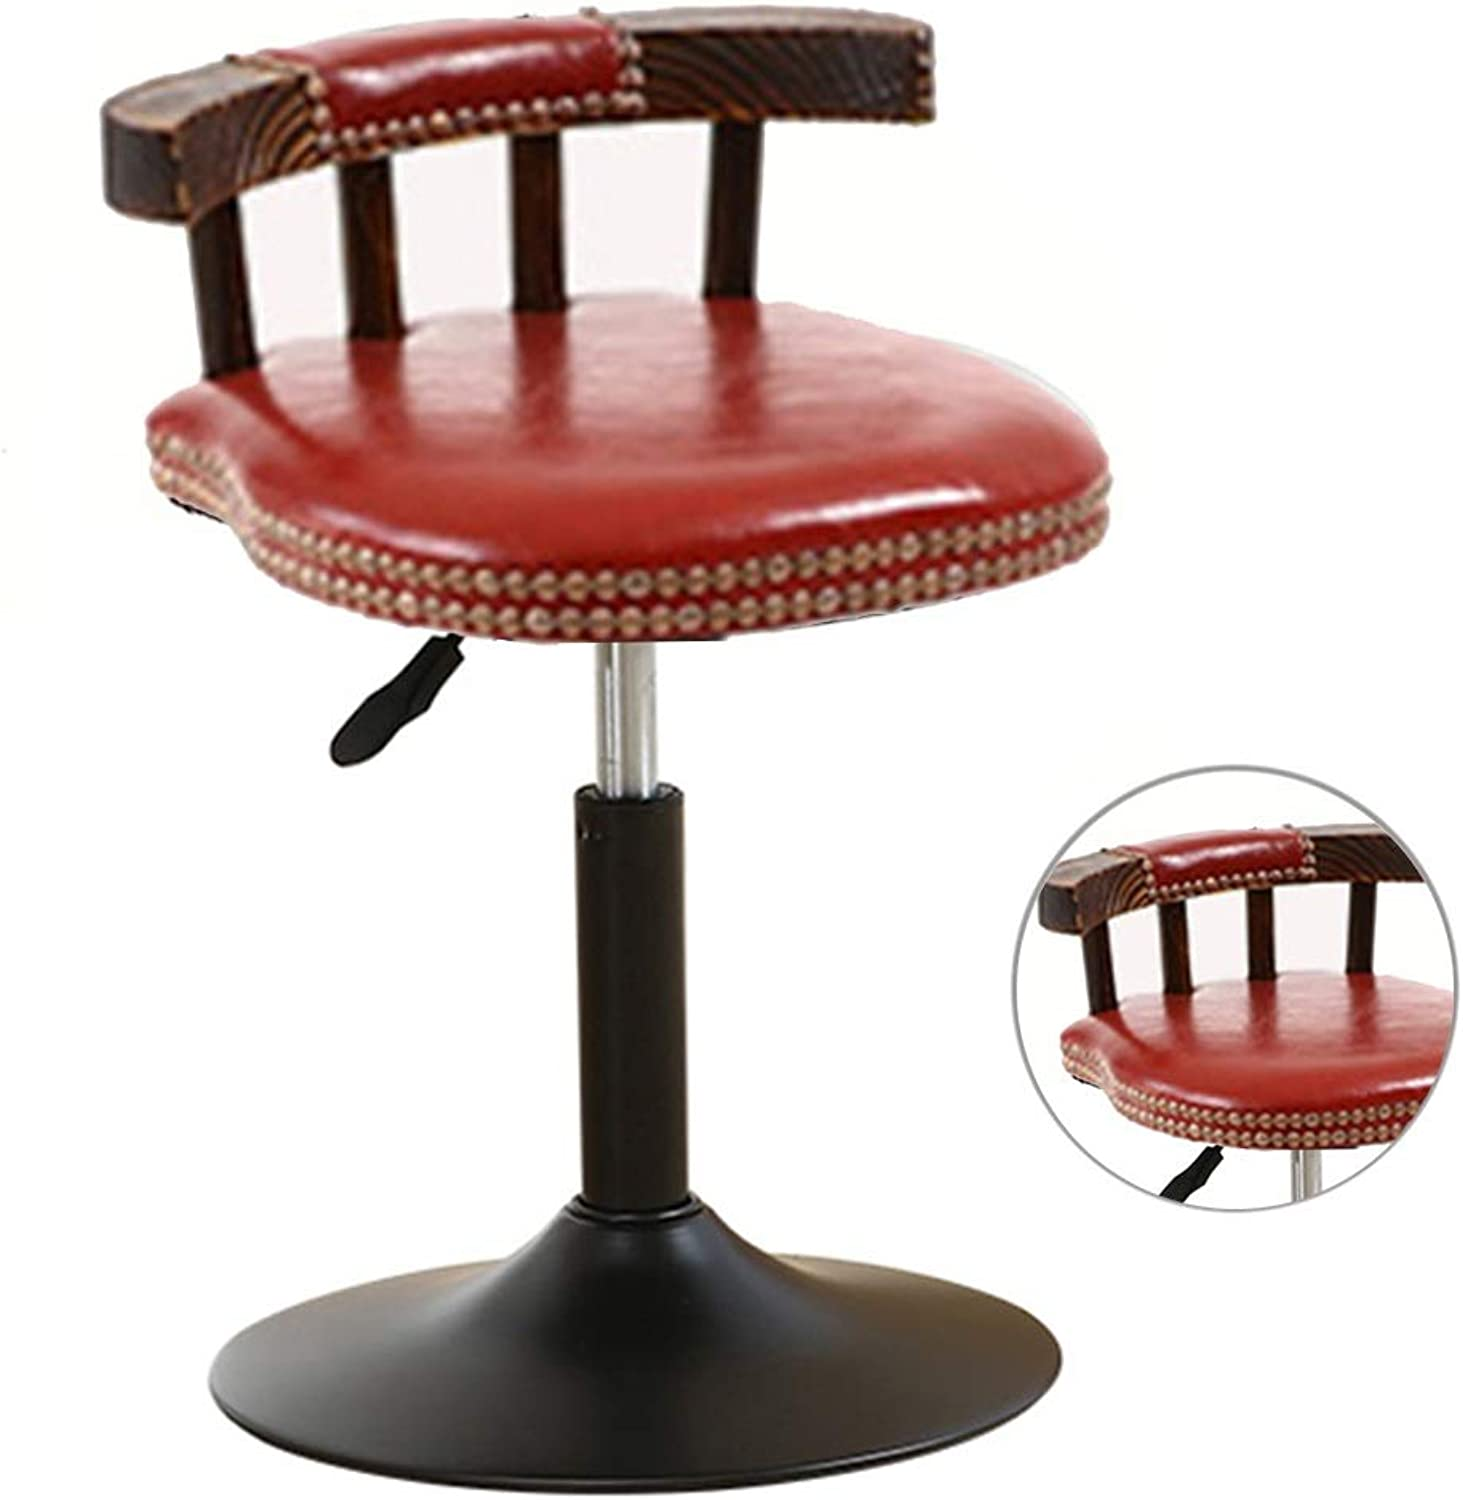 Round Square PU Leather Adjustable Bar Stools with Back Counter Height 360 Degree Swivel Stool PVC Leather Chairs Padded Seat with Footrest & Back Bar Pub Dining Room Kitchen Home Furniture 15.7 -20.8